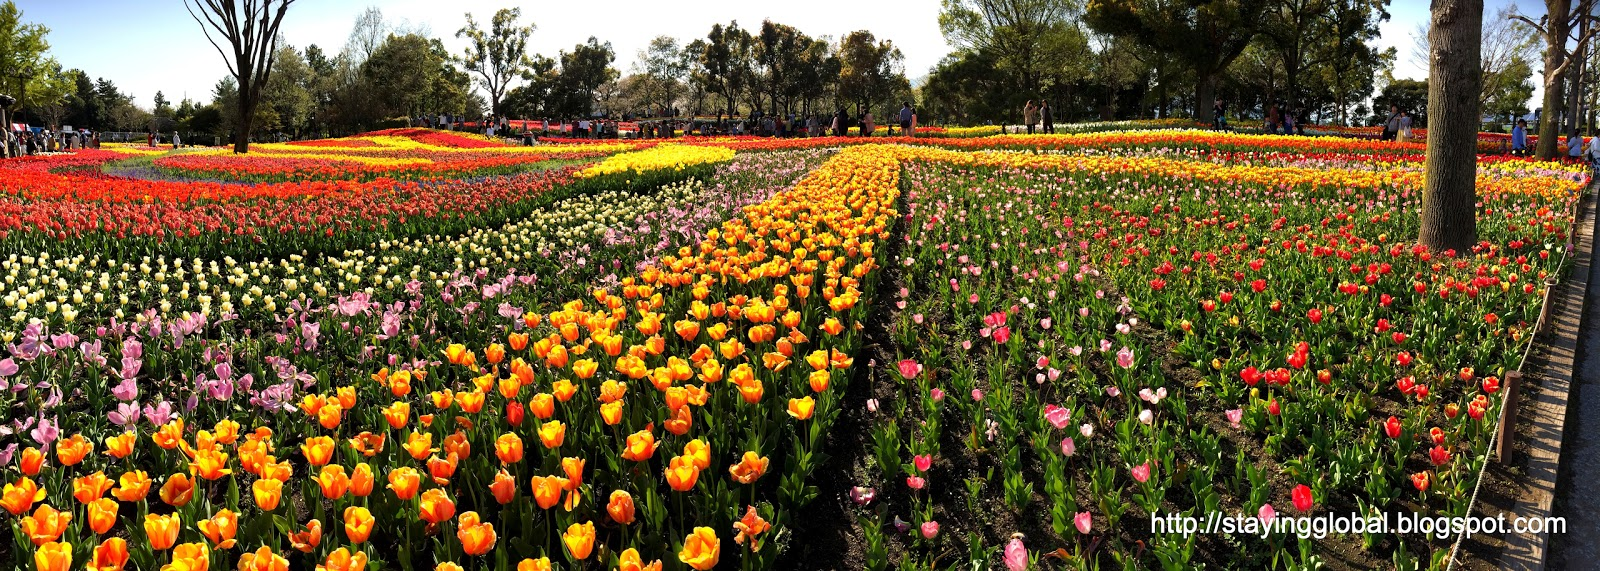 A Japanese Life: Tulips at Kiso Sansen Koen